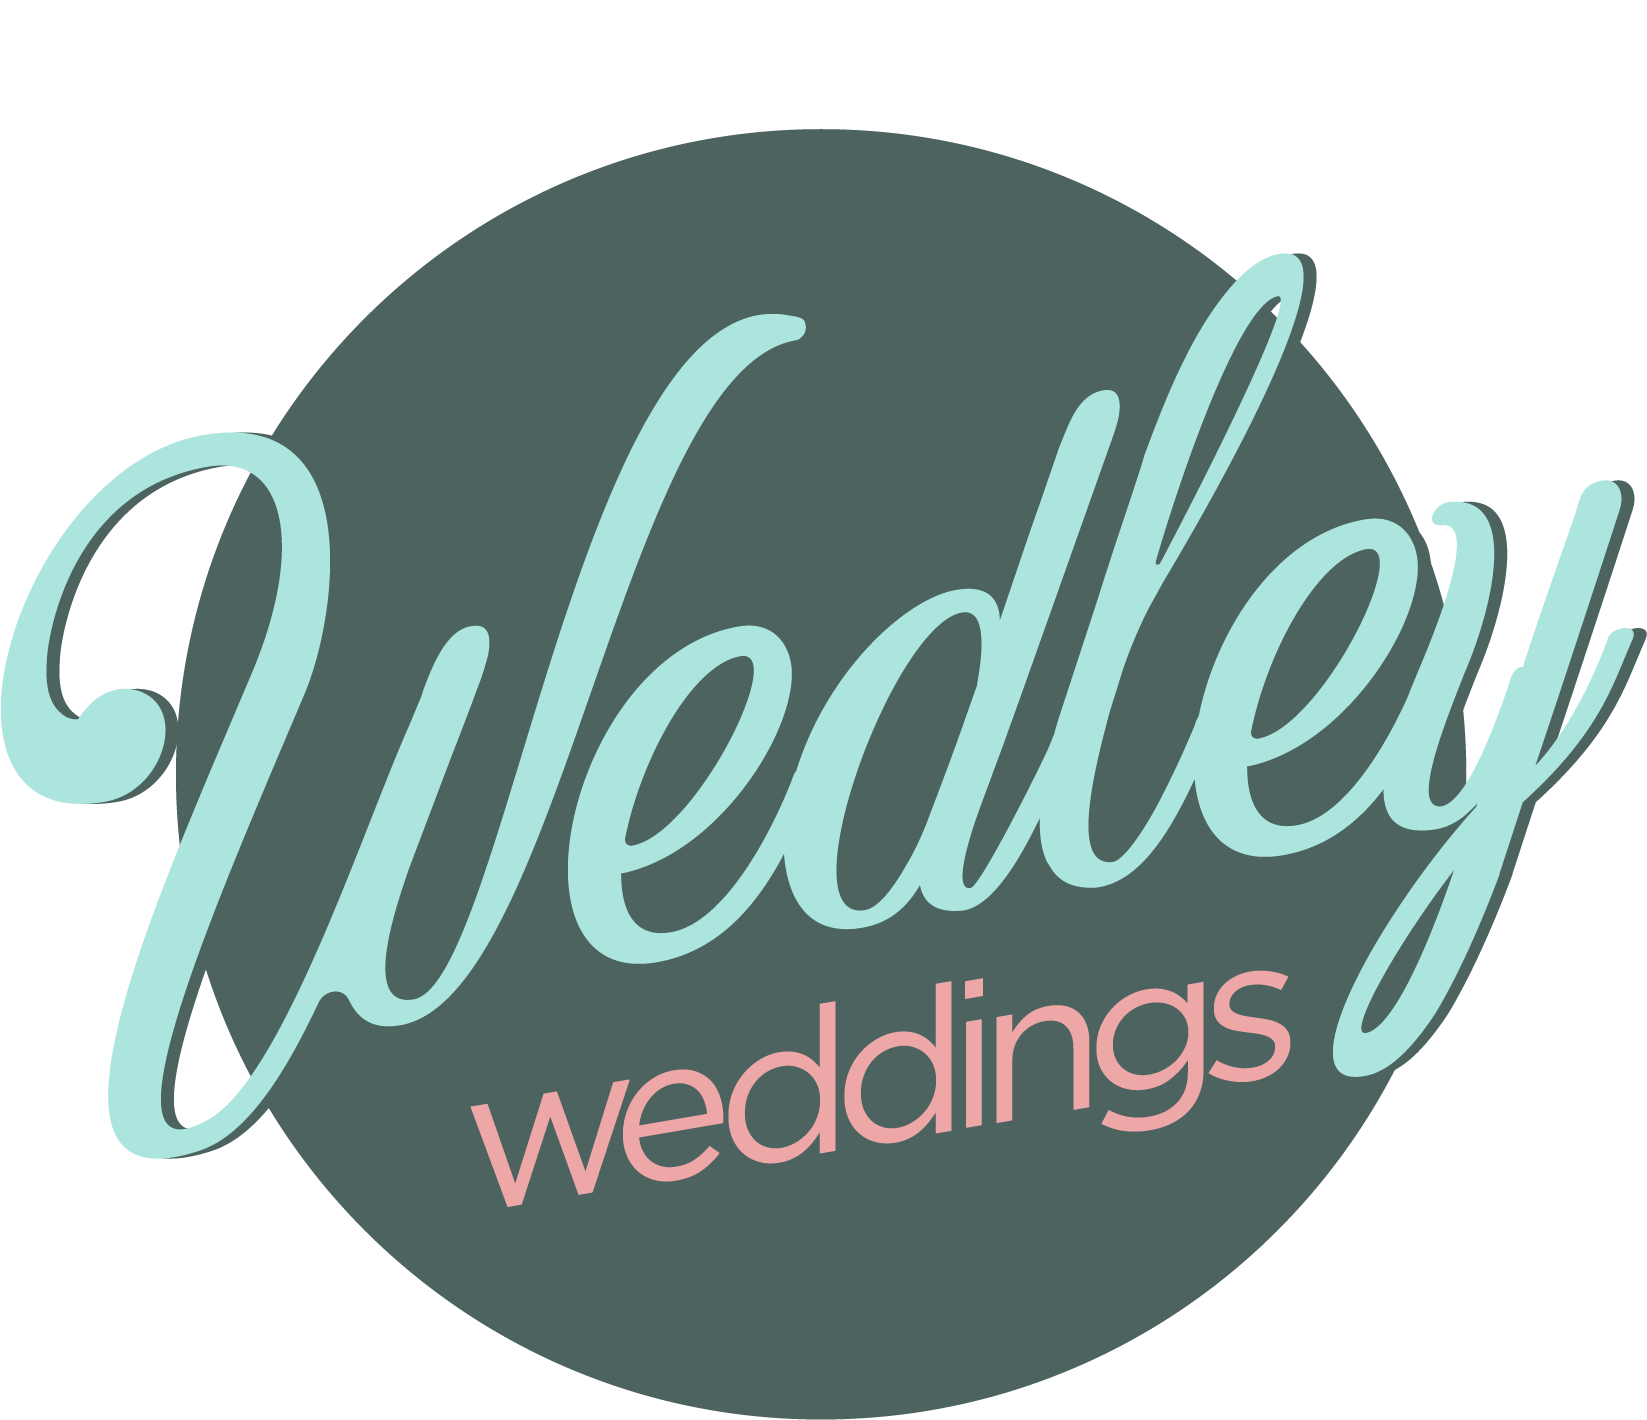 Wedley Wedding, LLC Logo